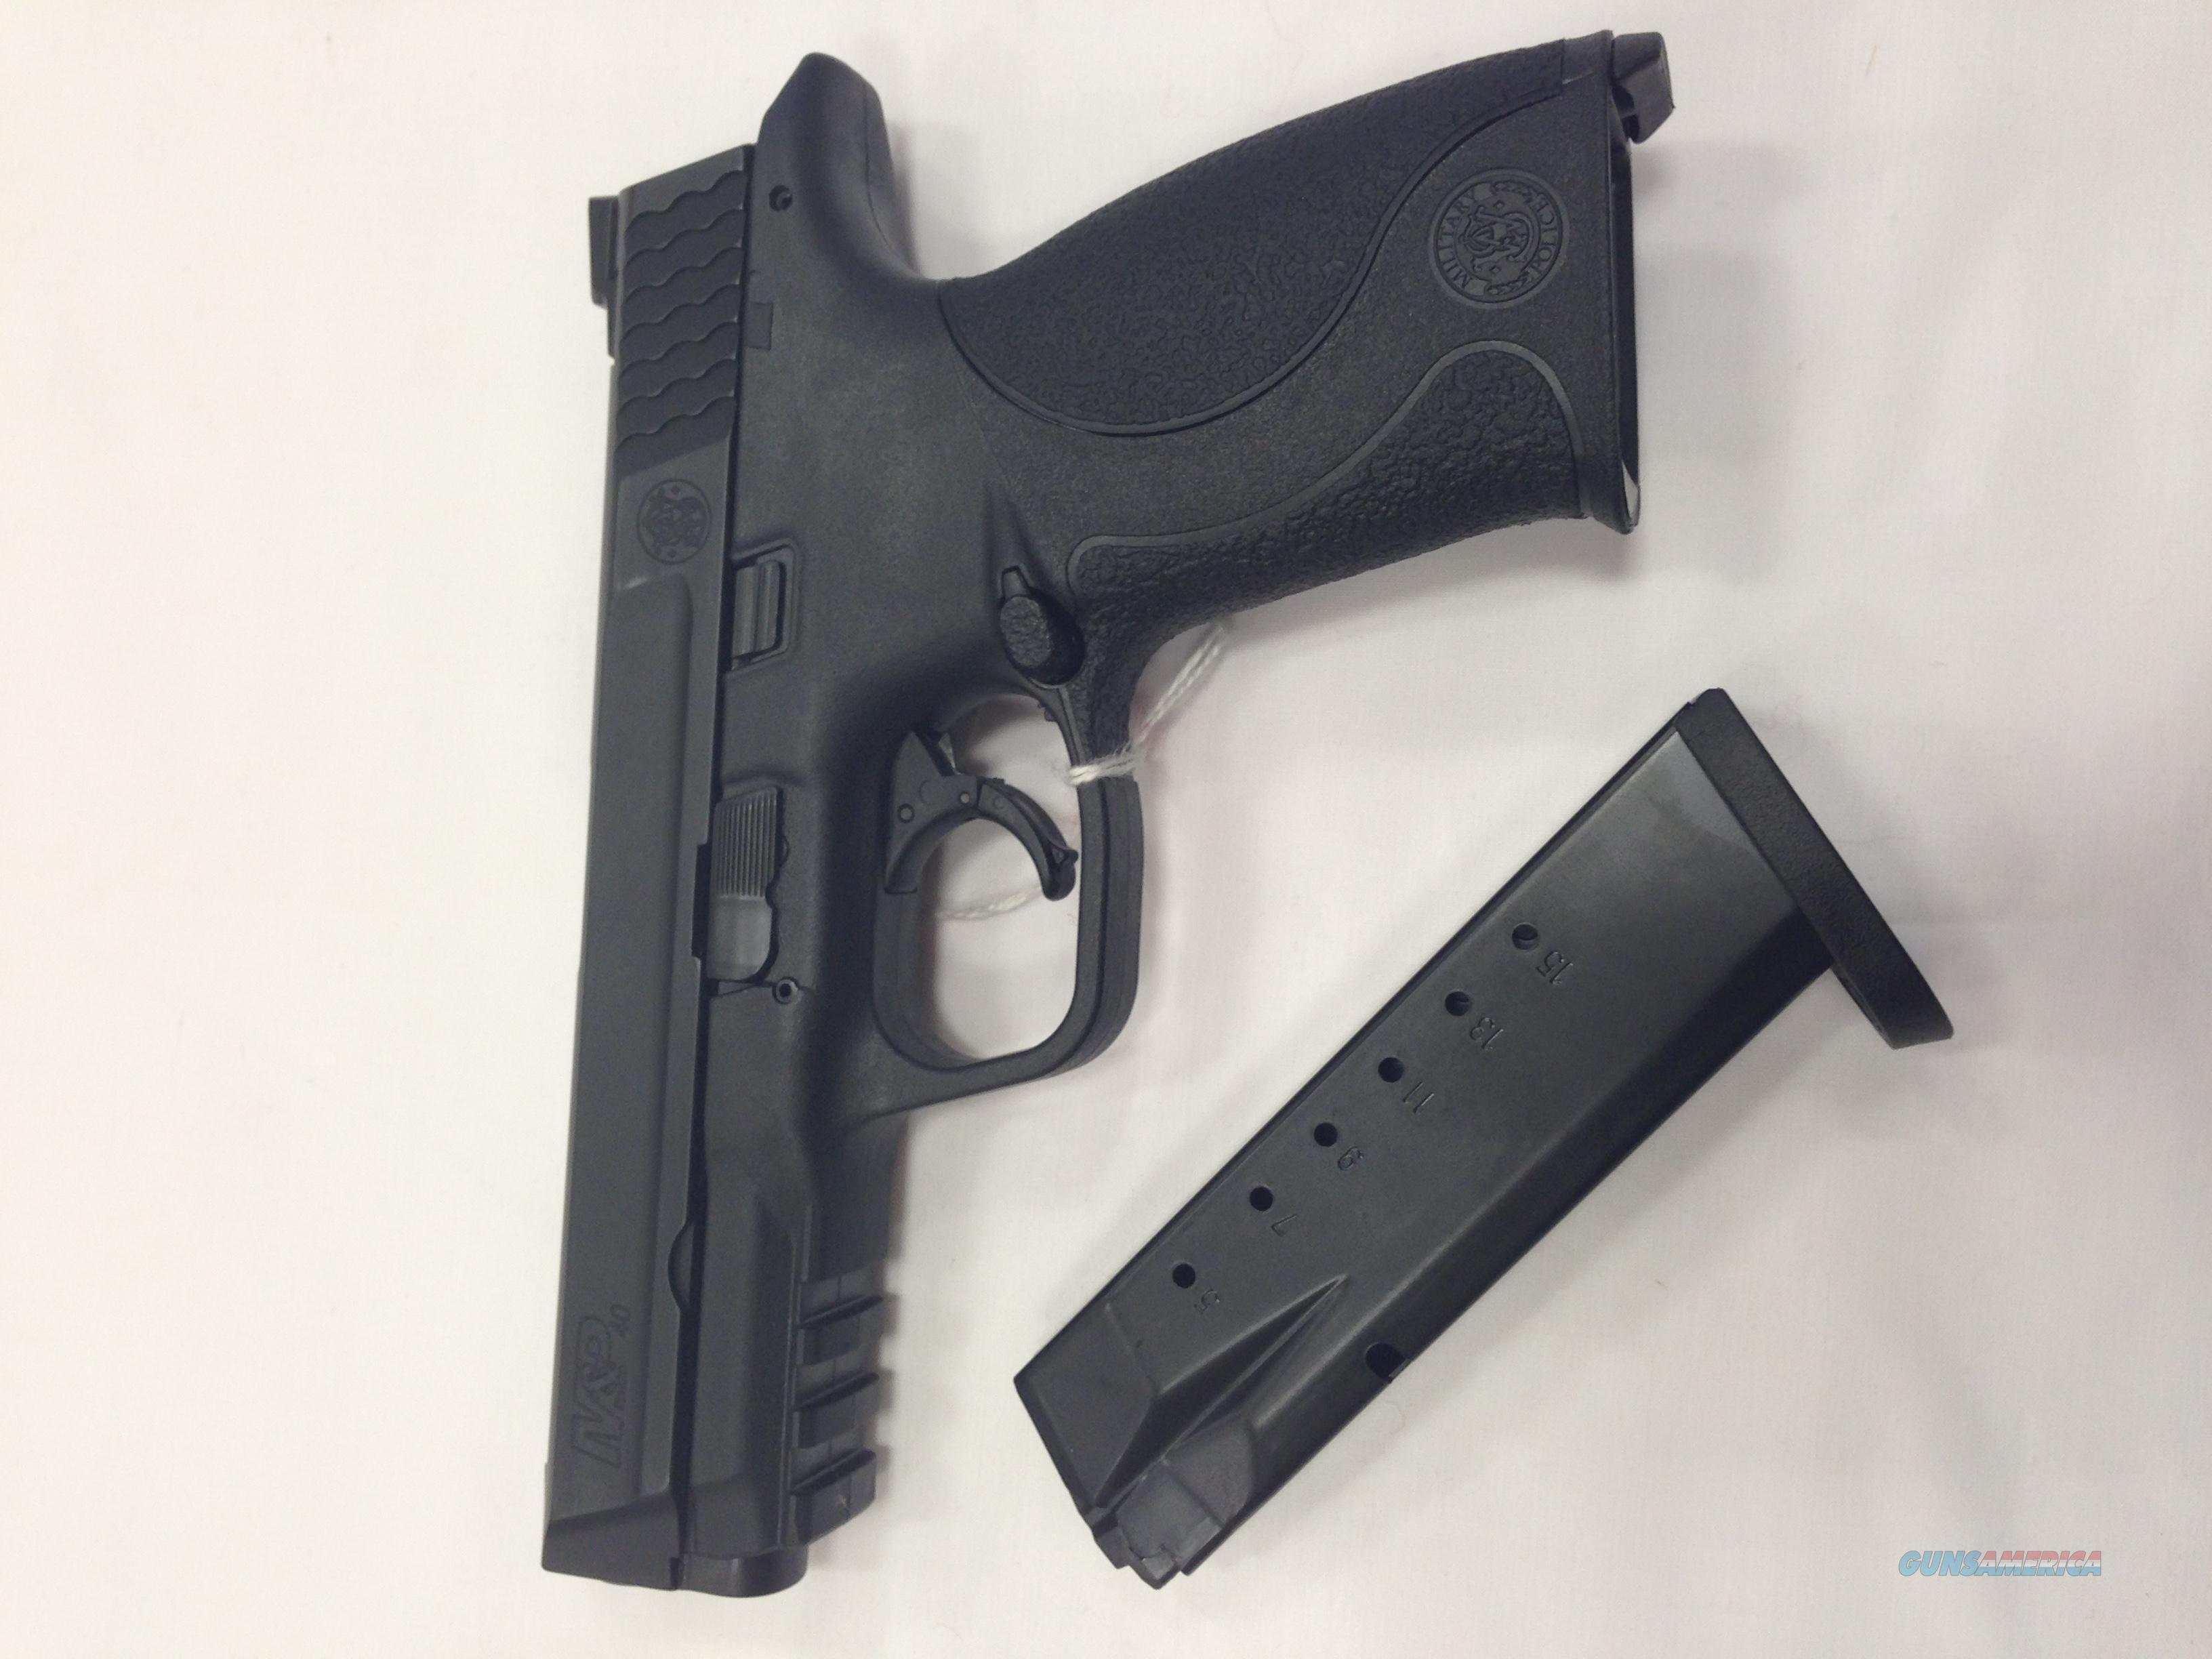 Smith & Wesson M&P Full Size 40 15RD  Guns > Pistols > Smith & Wesson Pistols - Autos > Polymer Frame